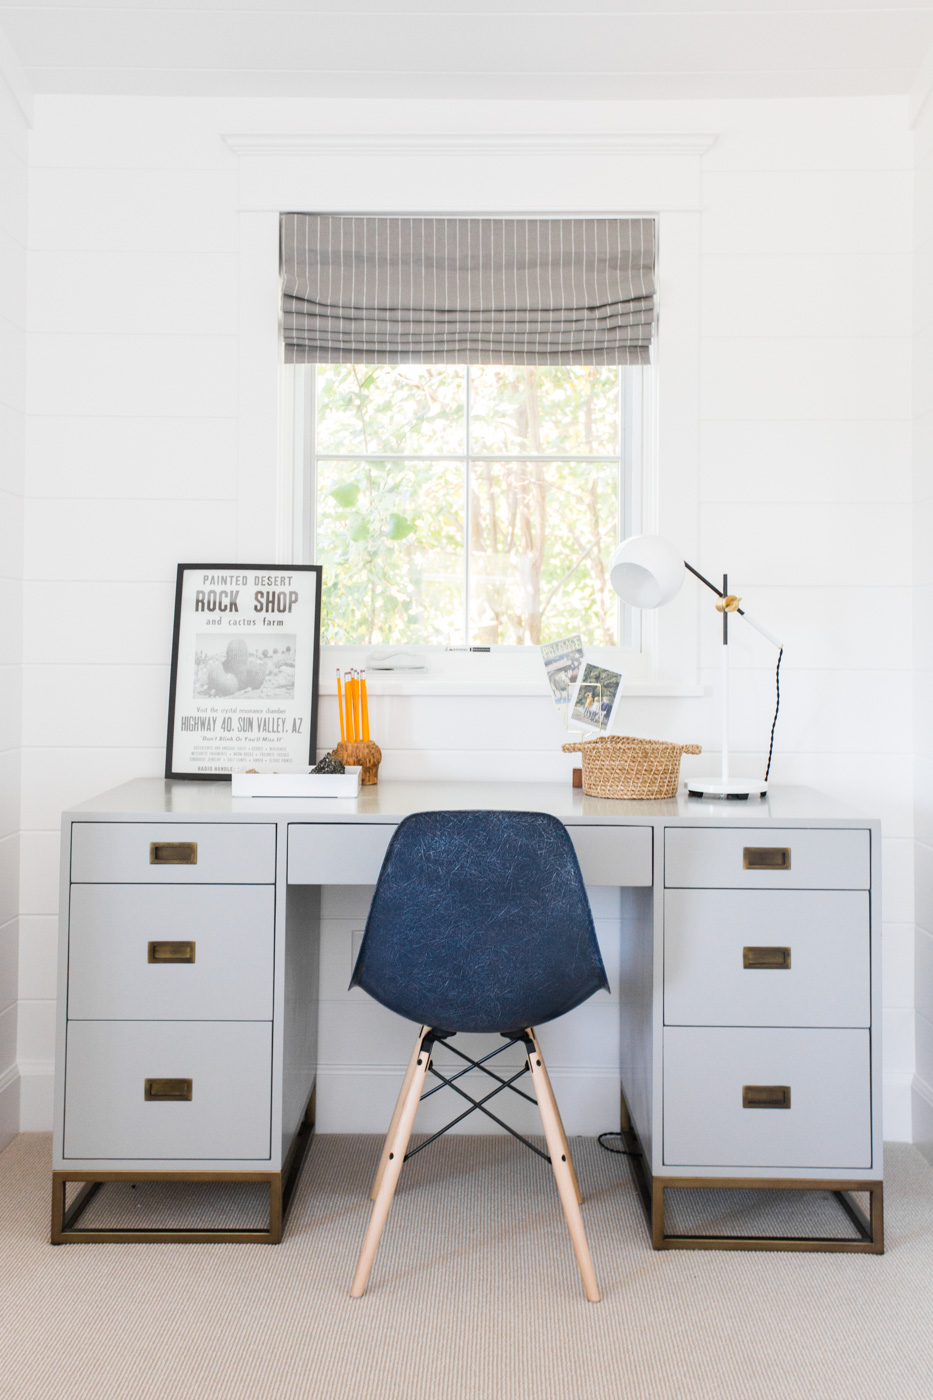 Creative desk area for kid's room